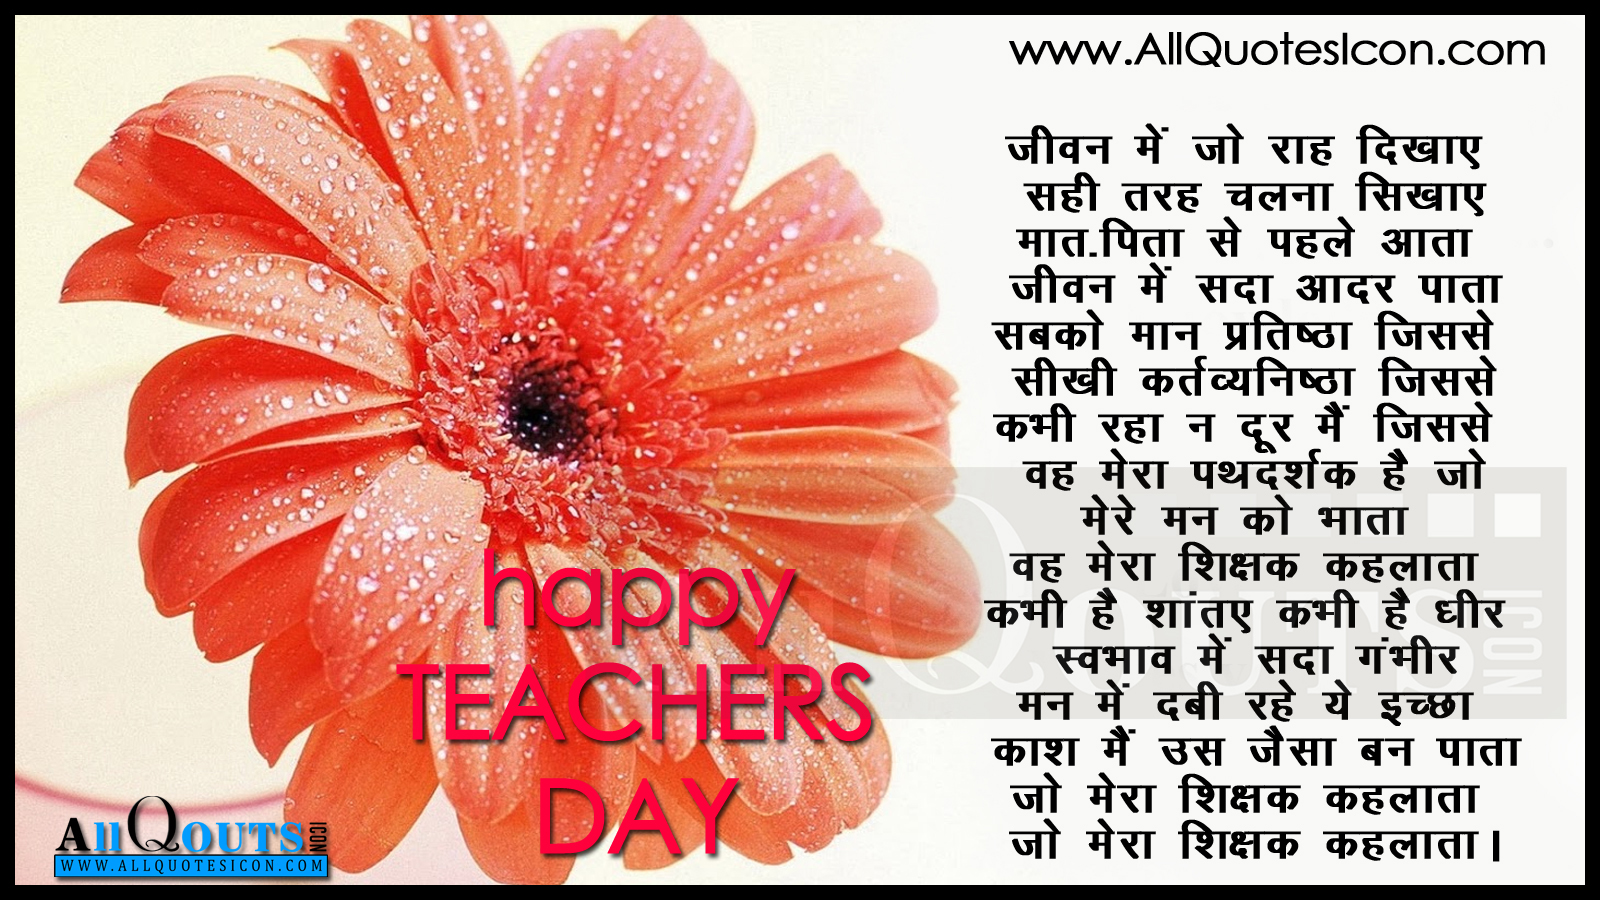 teachers day speech in hindi for kids Best collection on independence day 2015 (15 august) speech, bhashan in hindi (15 august) speech, bhashan in hindi for kids independence day speech teacher day ke liya speech in hindi more from my site.